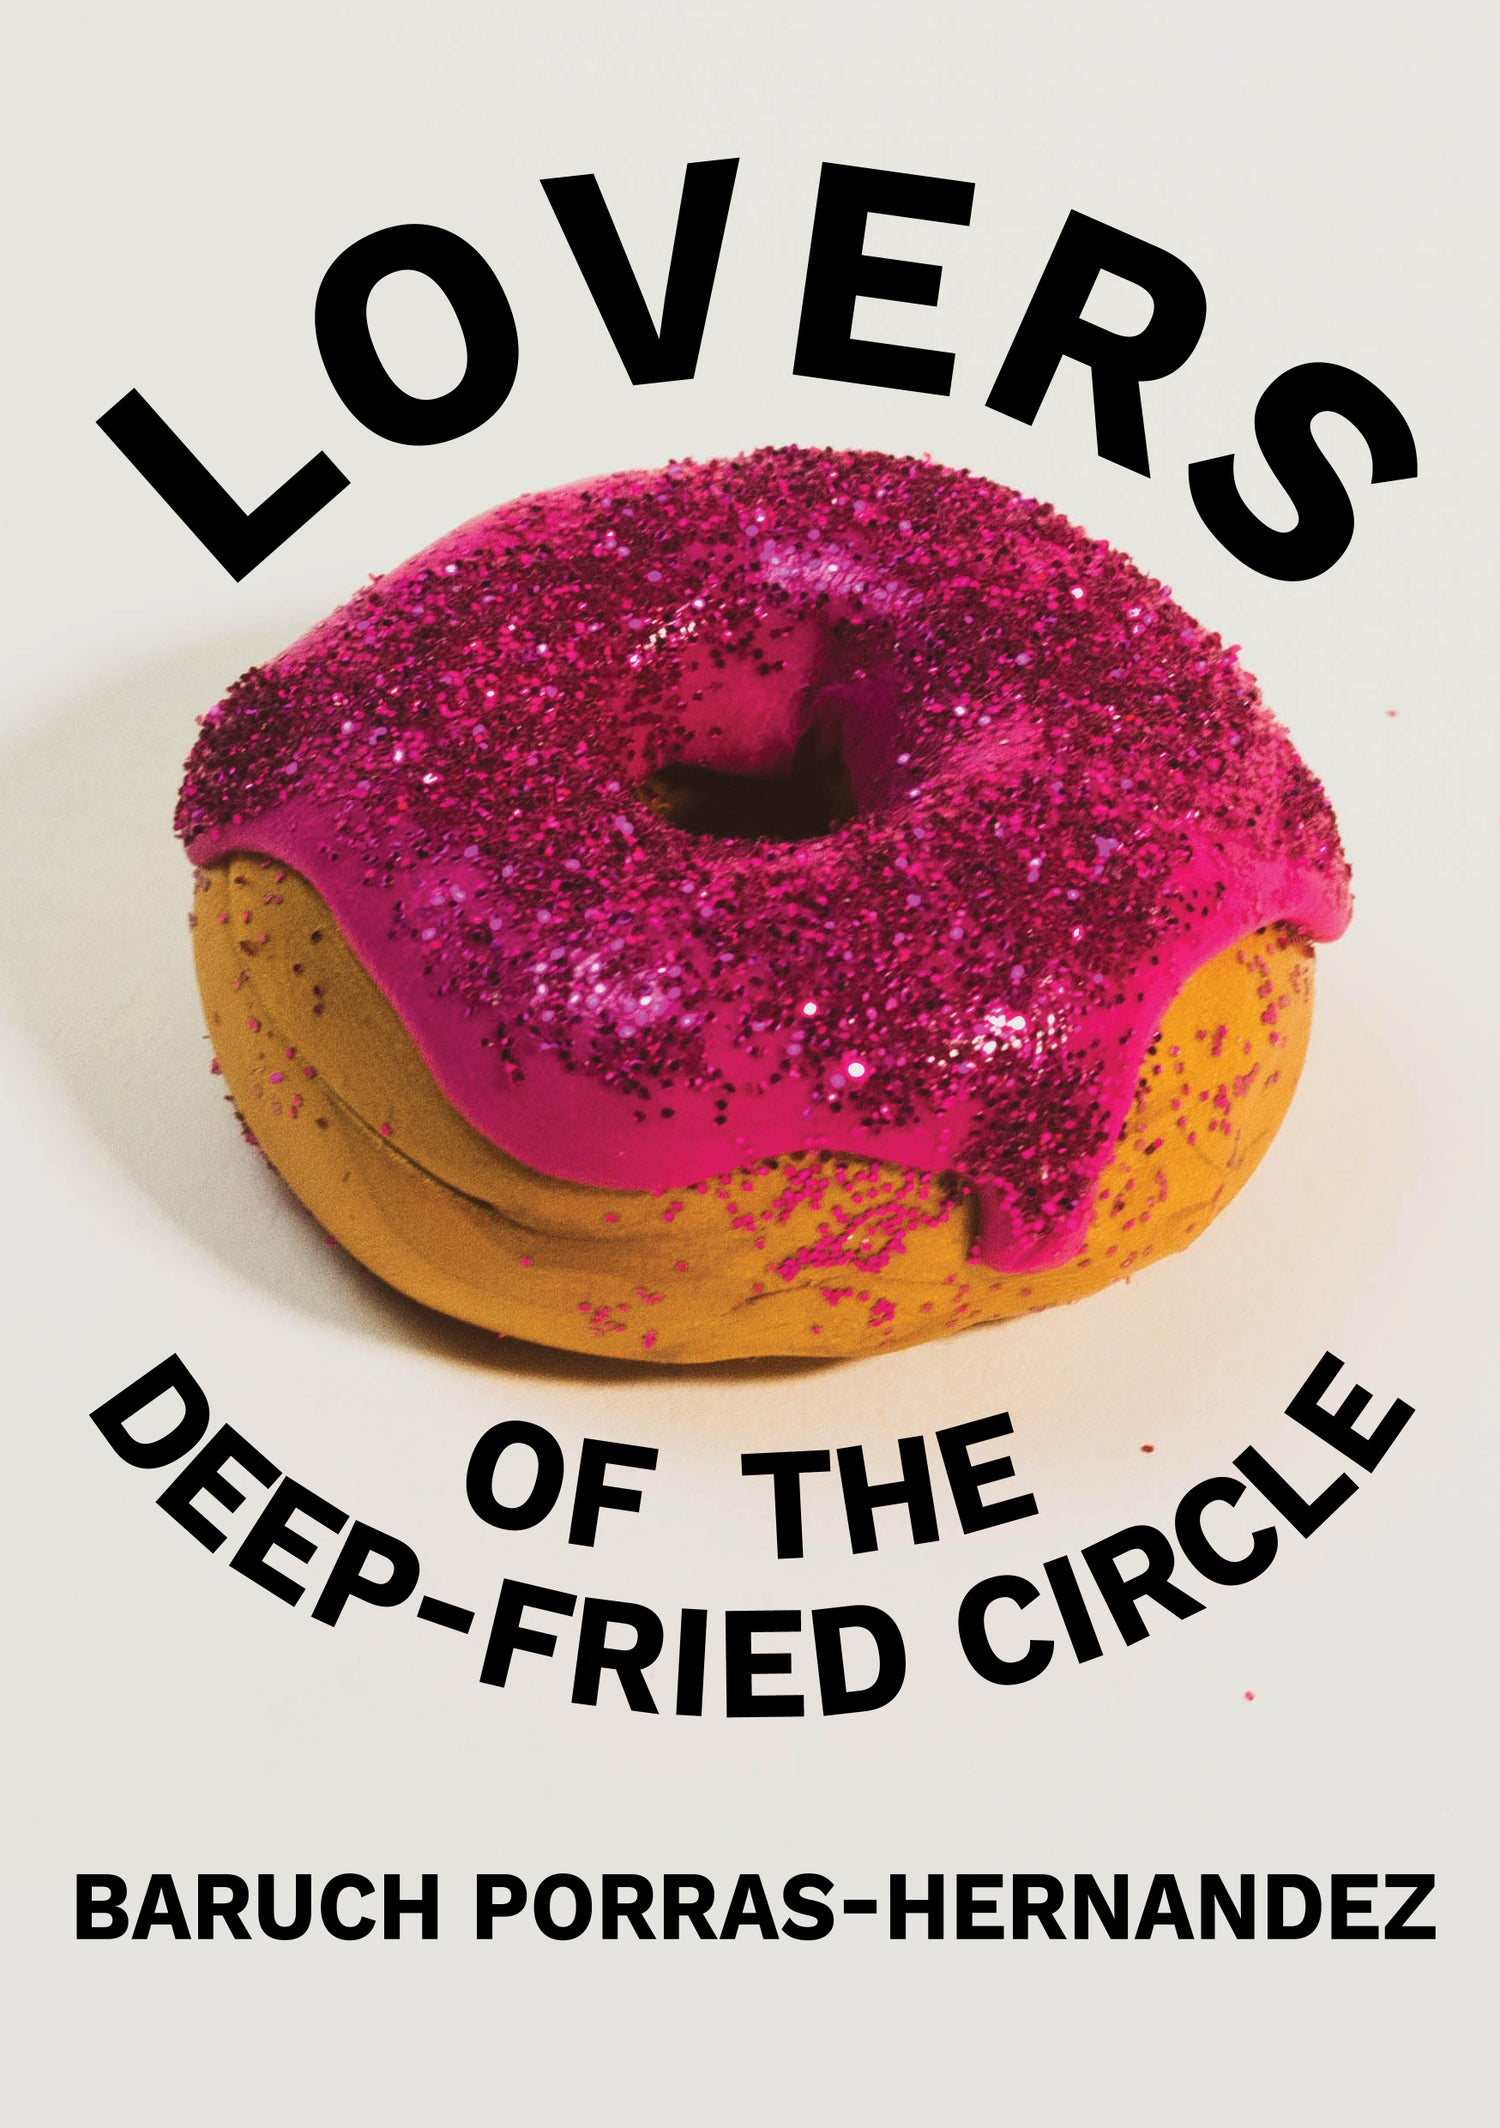 Image of Lovers of the Deep-Fried Circle (THE FUNNY ONE) by Baruch Porras-Hernandez